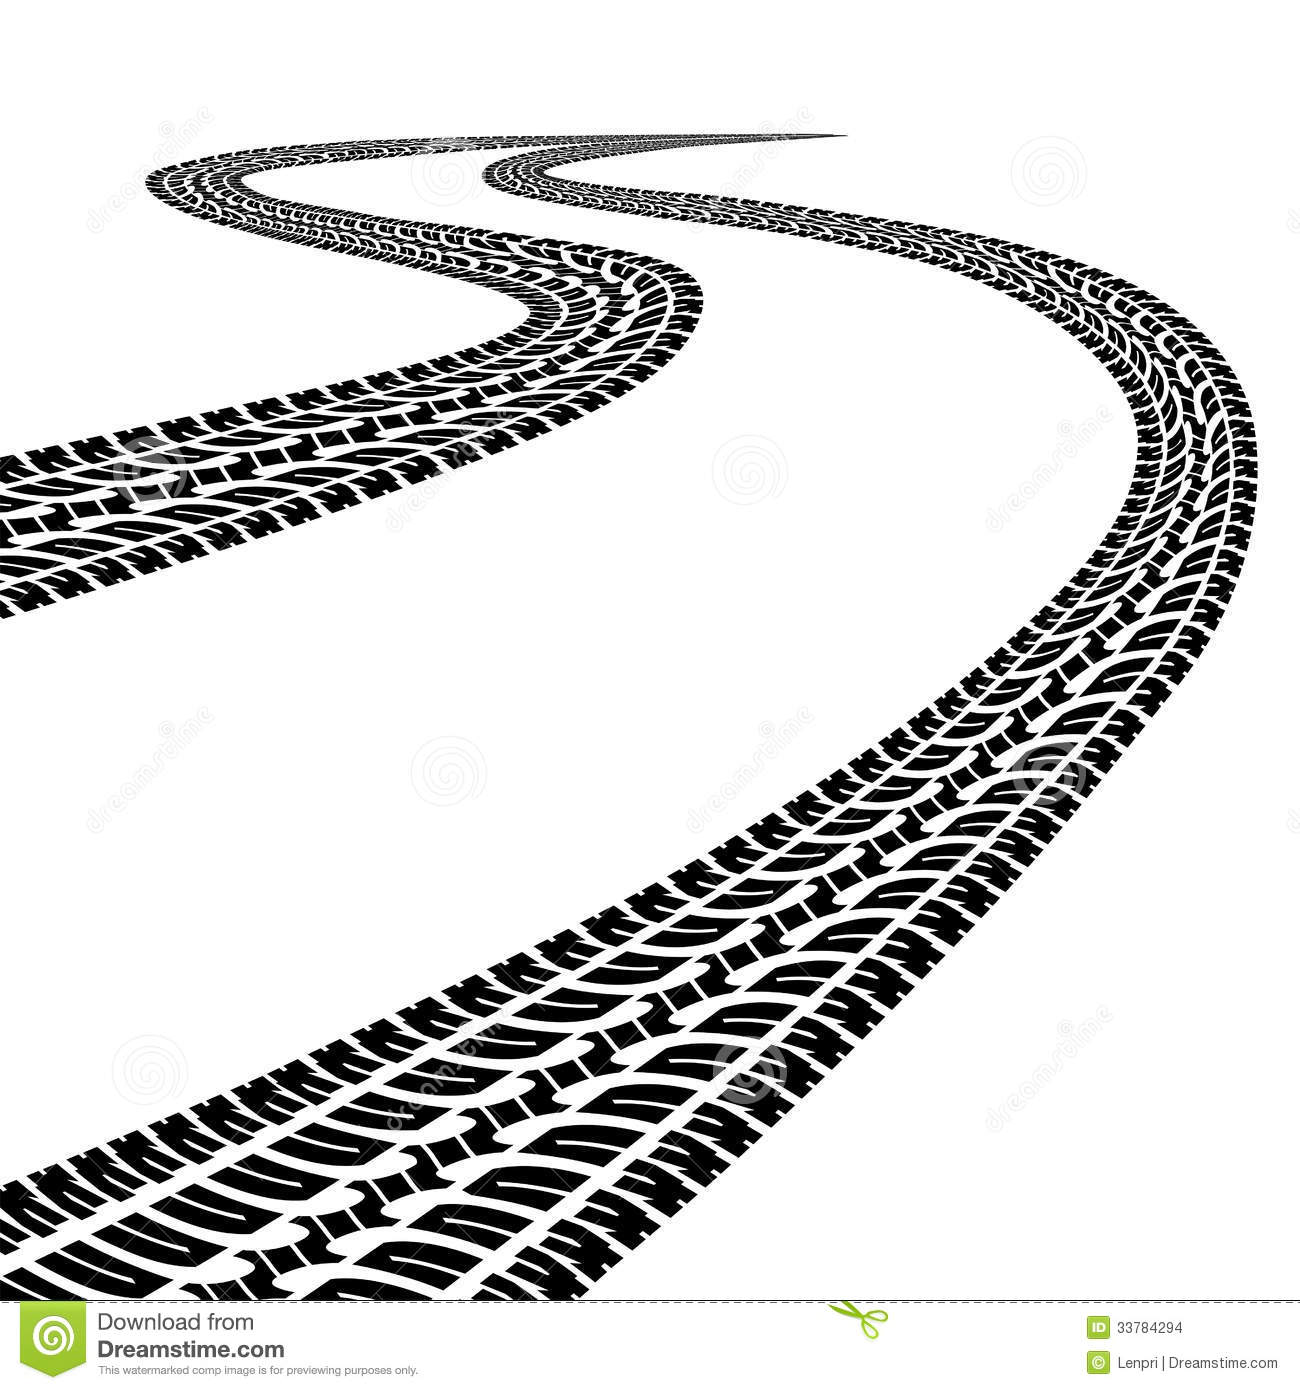 Winding Trace Of The Tires Stock Vector.